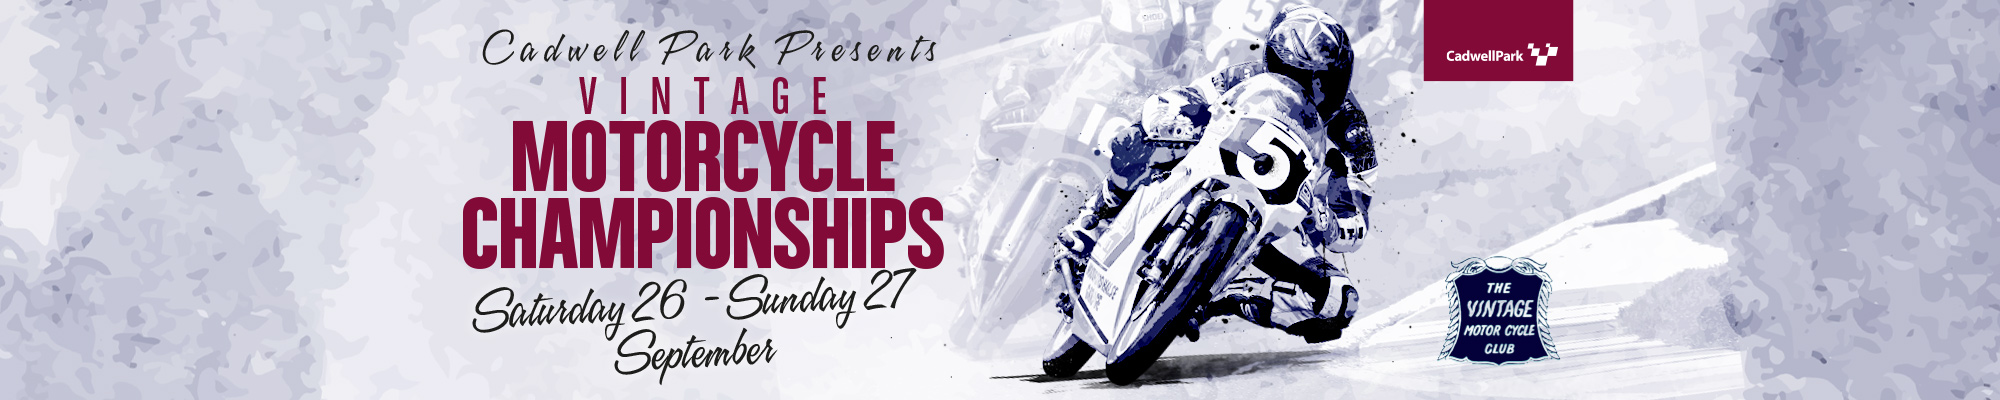 VMCC Vintage Motorcycle Championships